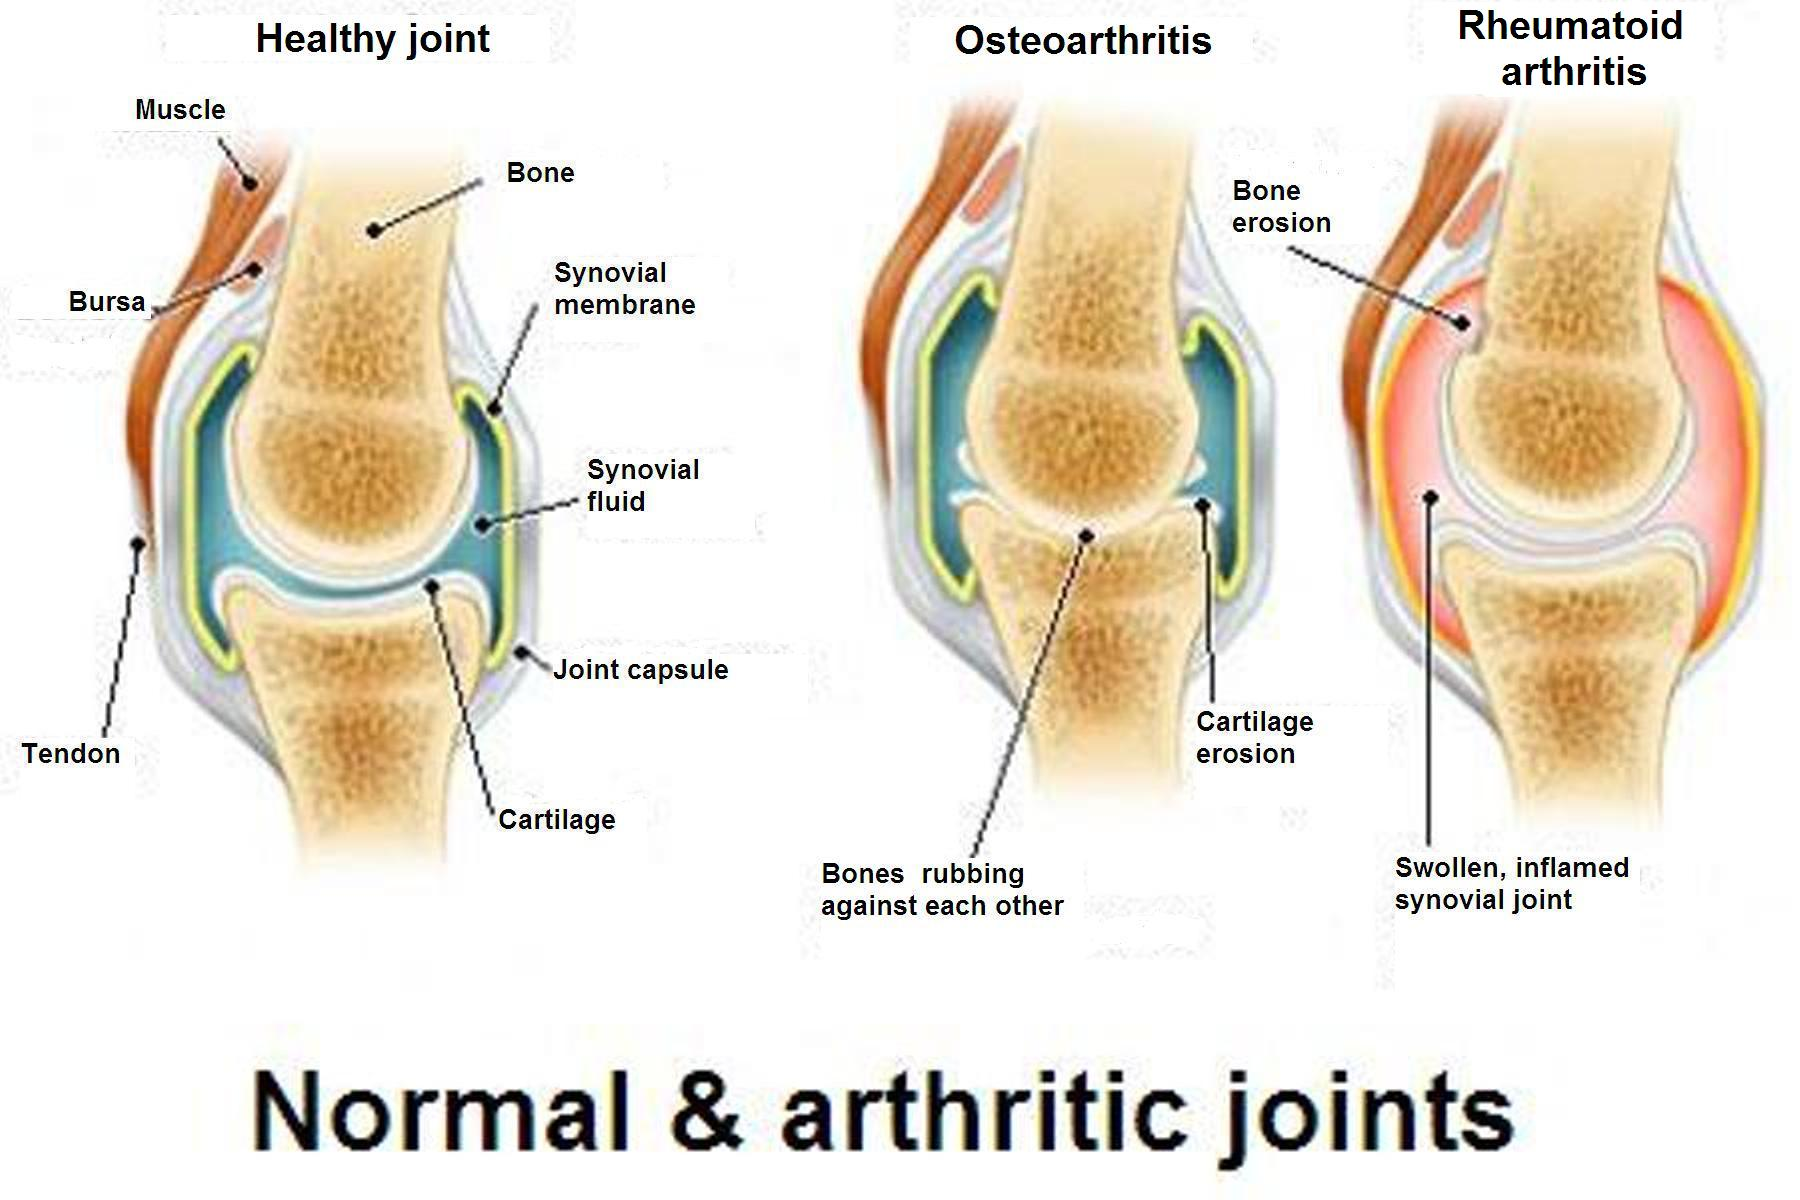 healthy joint, joint with osteoarthritis, joint with rhematoid arthritis